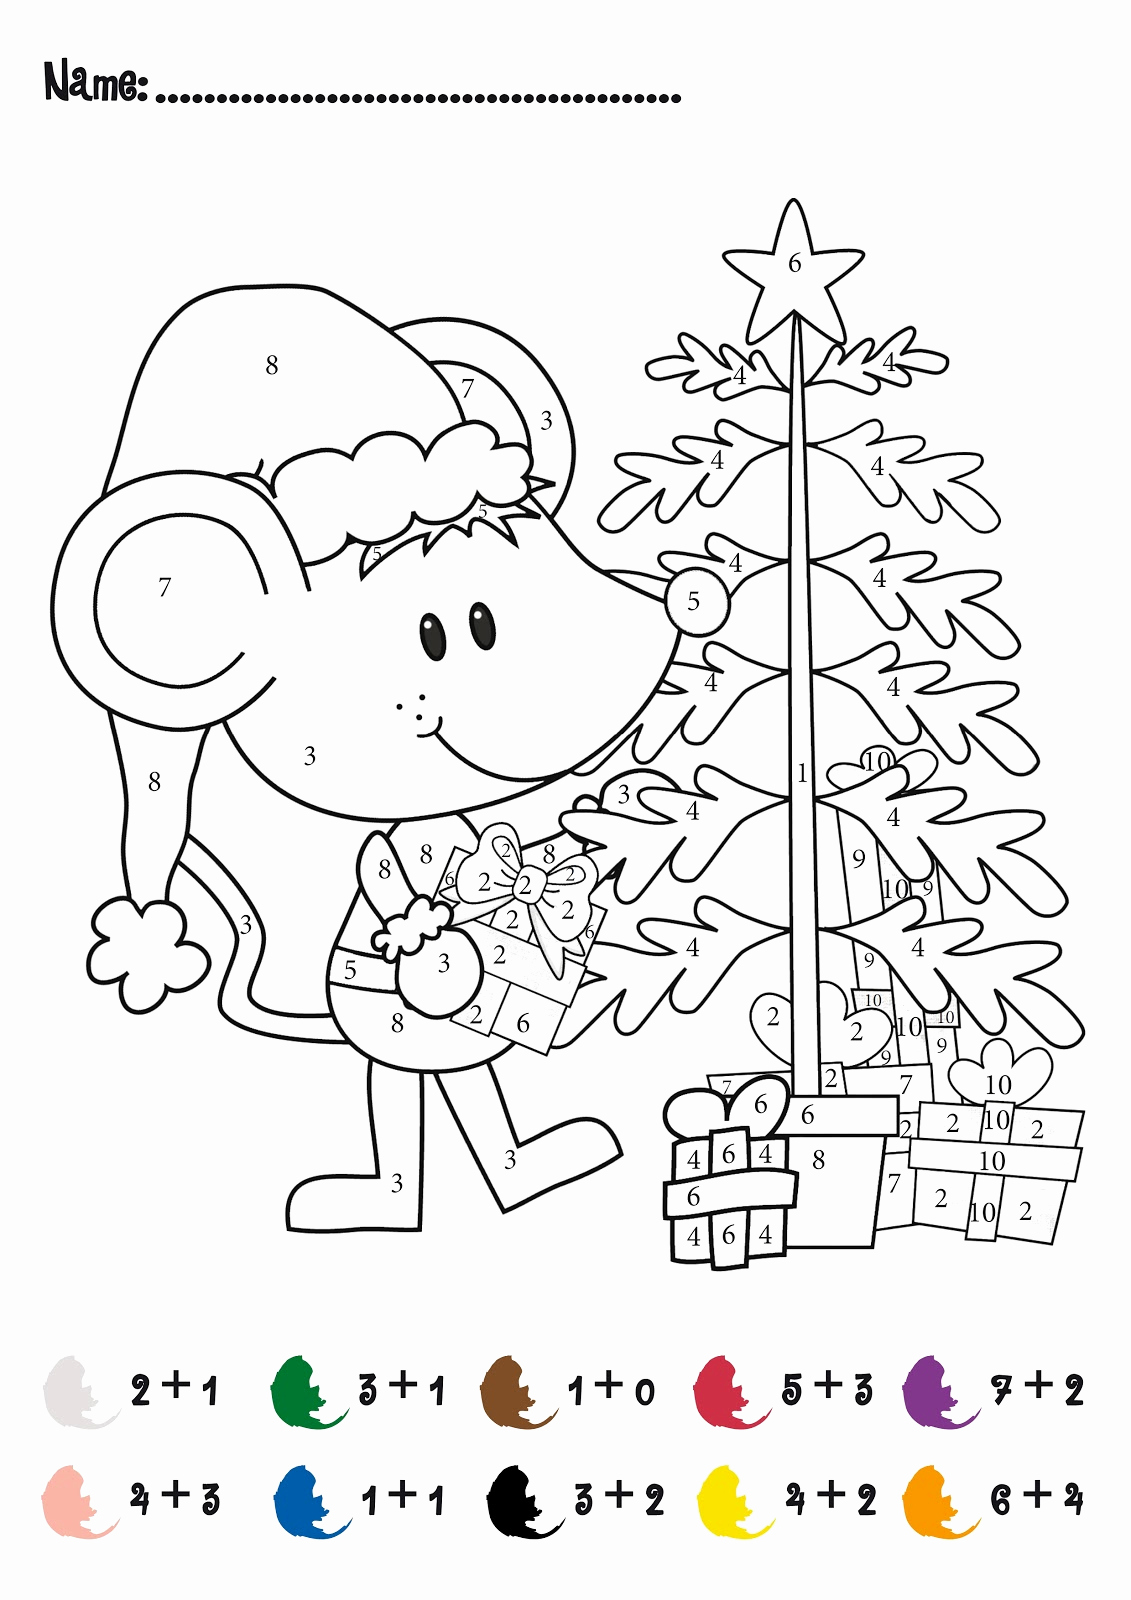 Coloring Addition Worksheet Fresh Color by Number Addition Best Coloring Pages for Kids